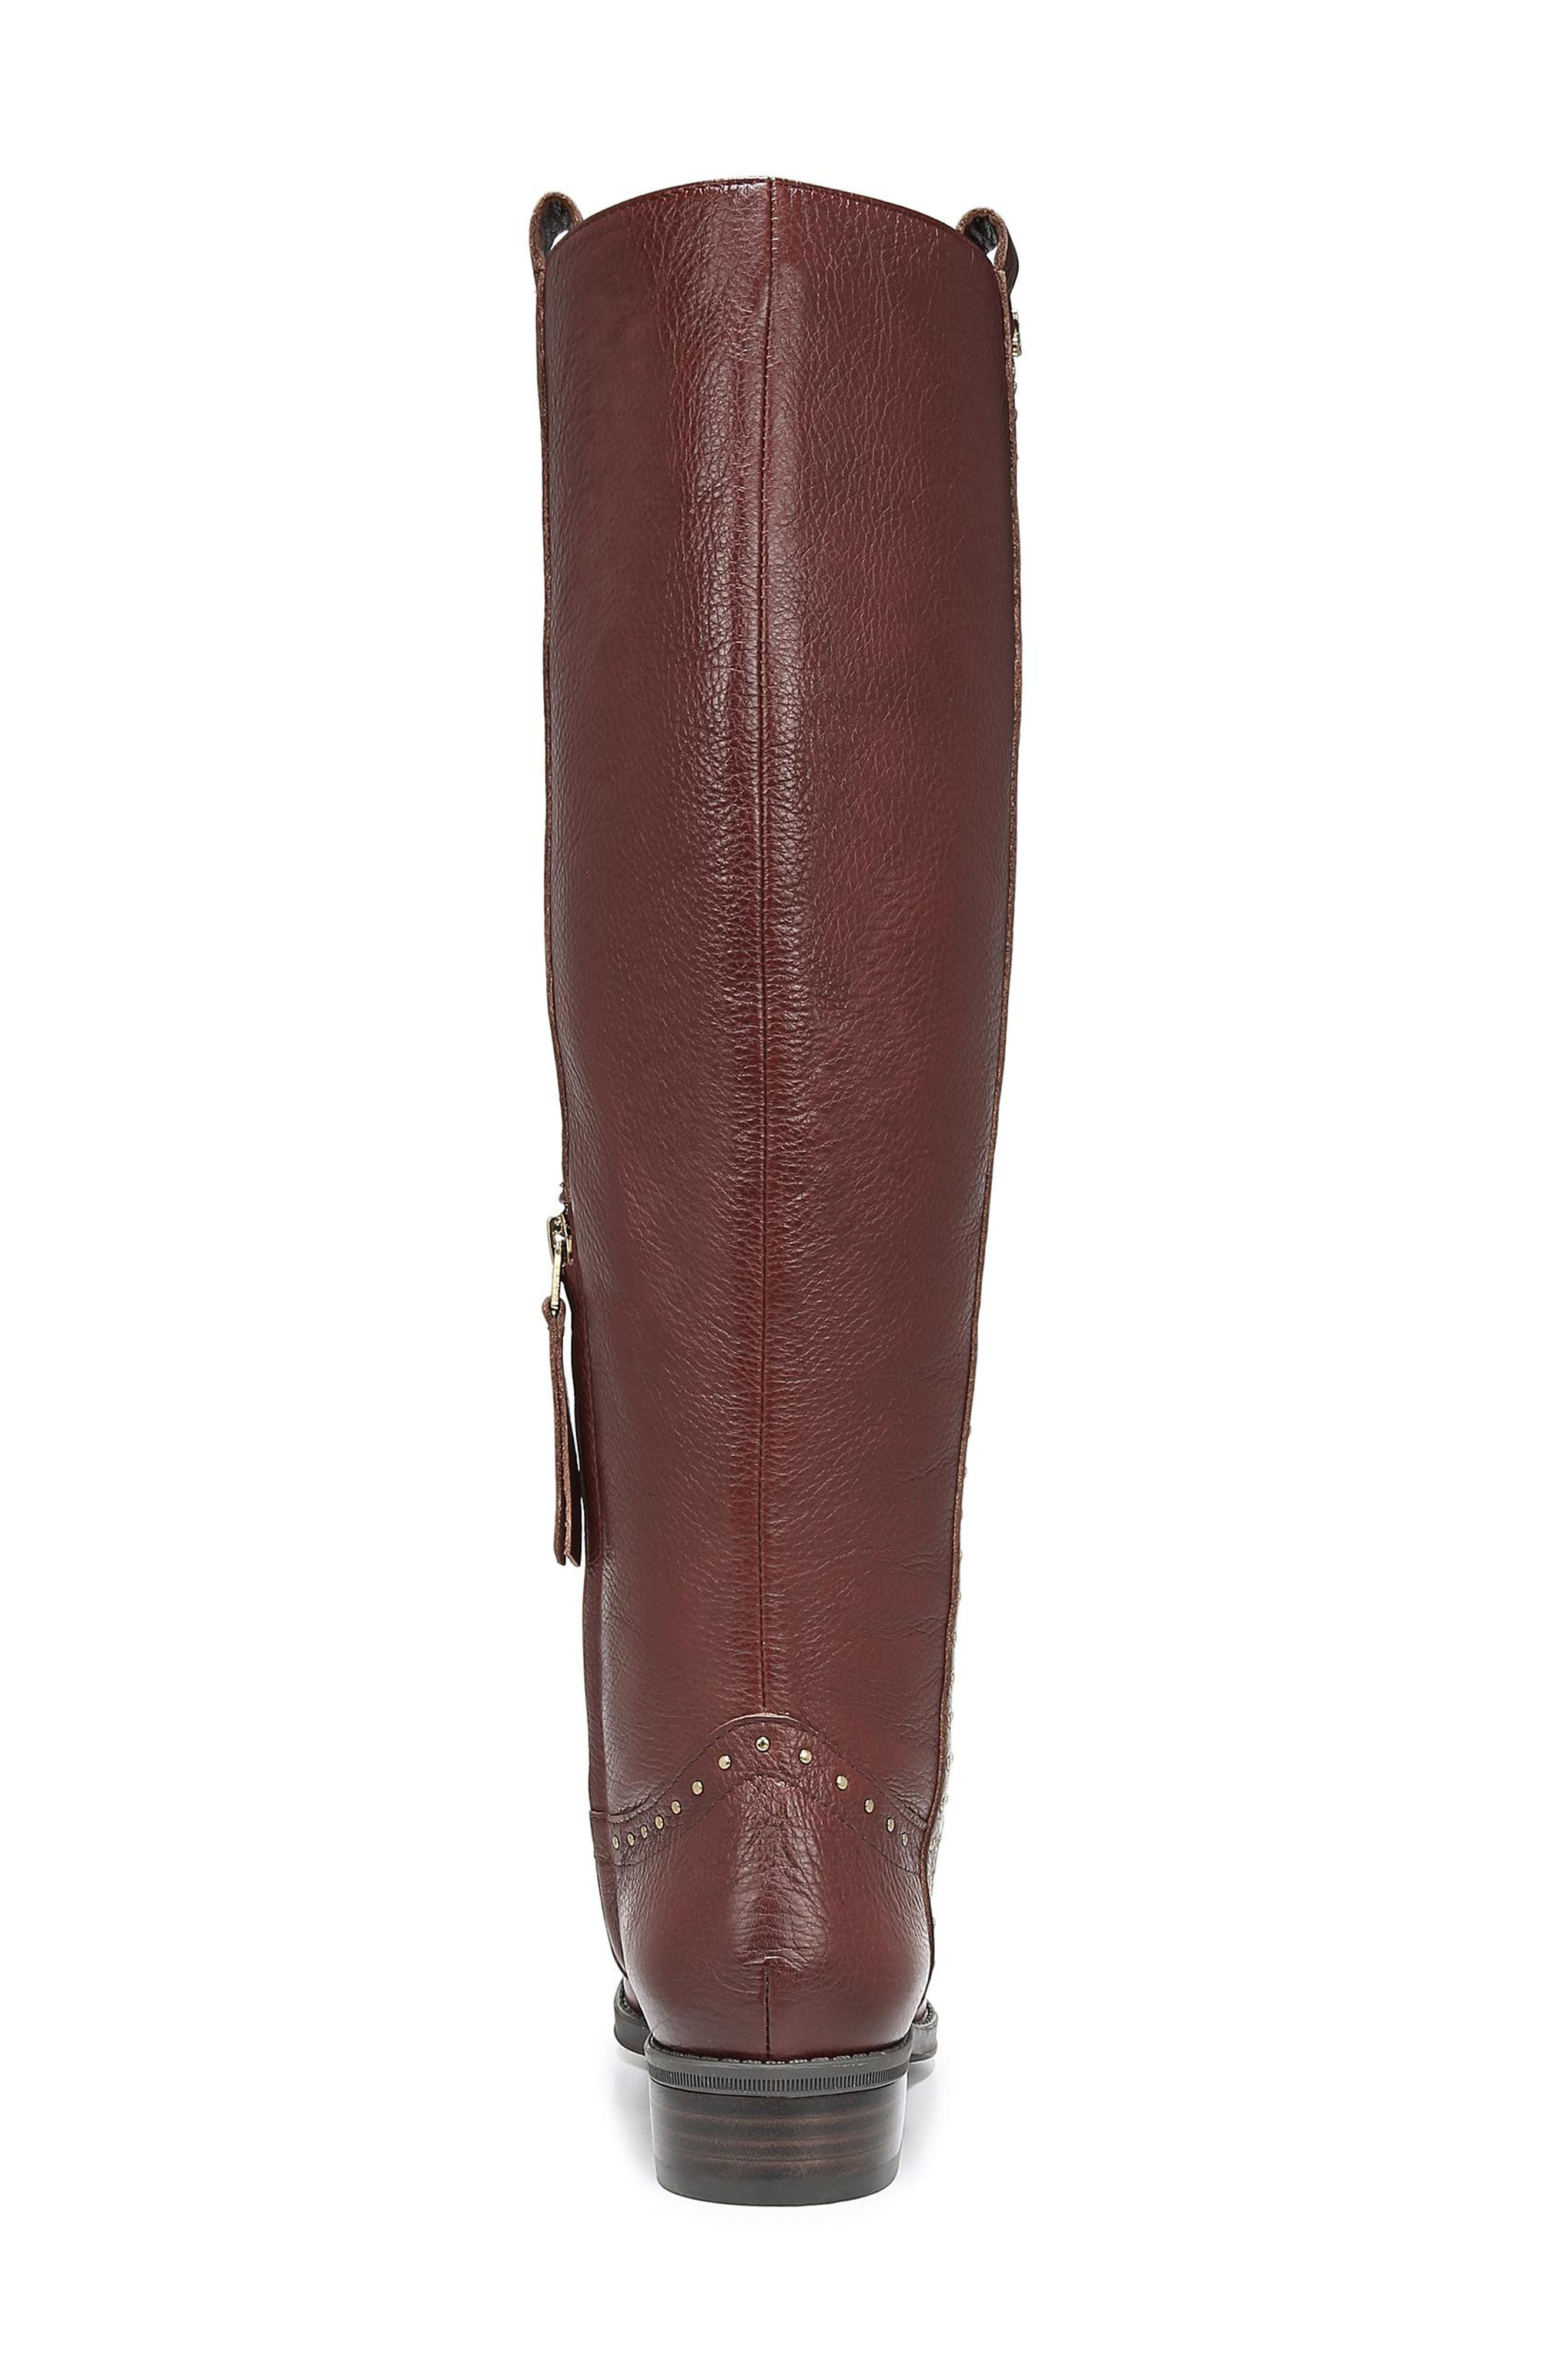 Prina Riding Boot,                             Alternate thumbnail 7, color,                             REDWOOD BROWN LEATHER